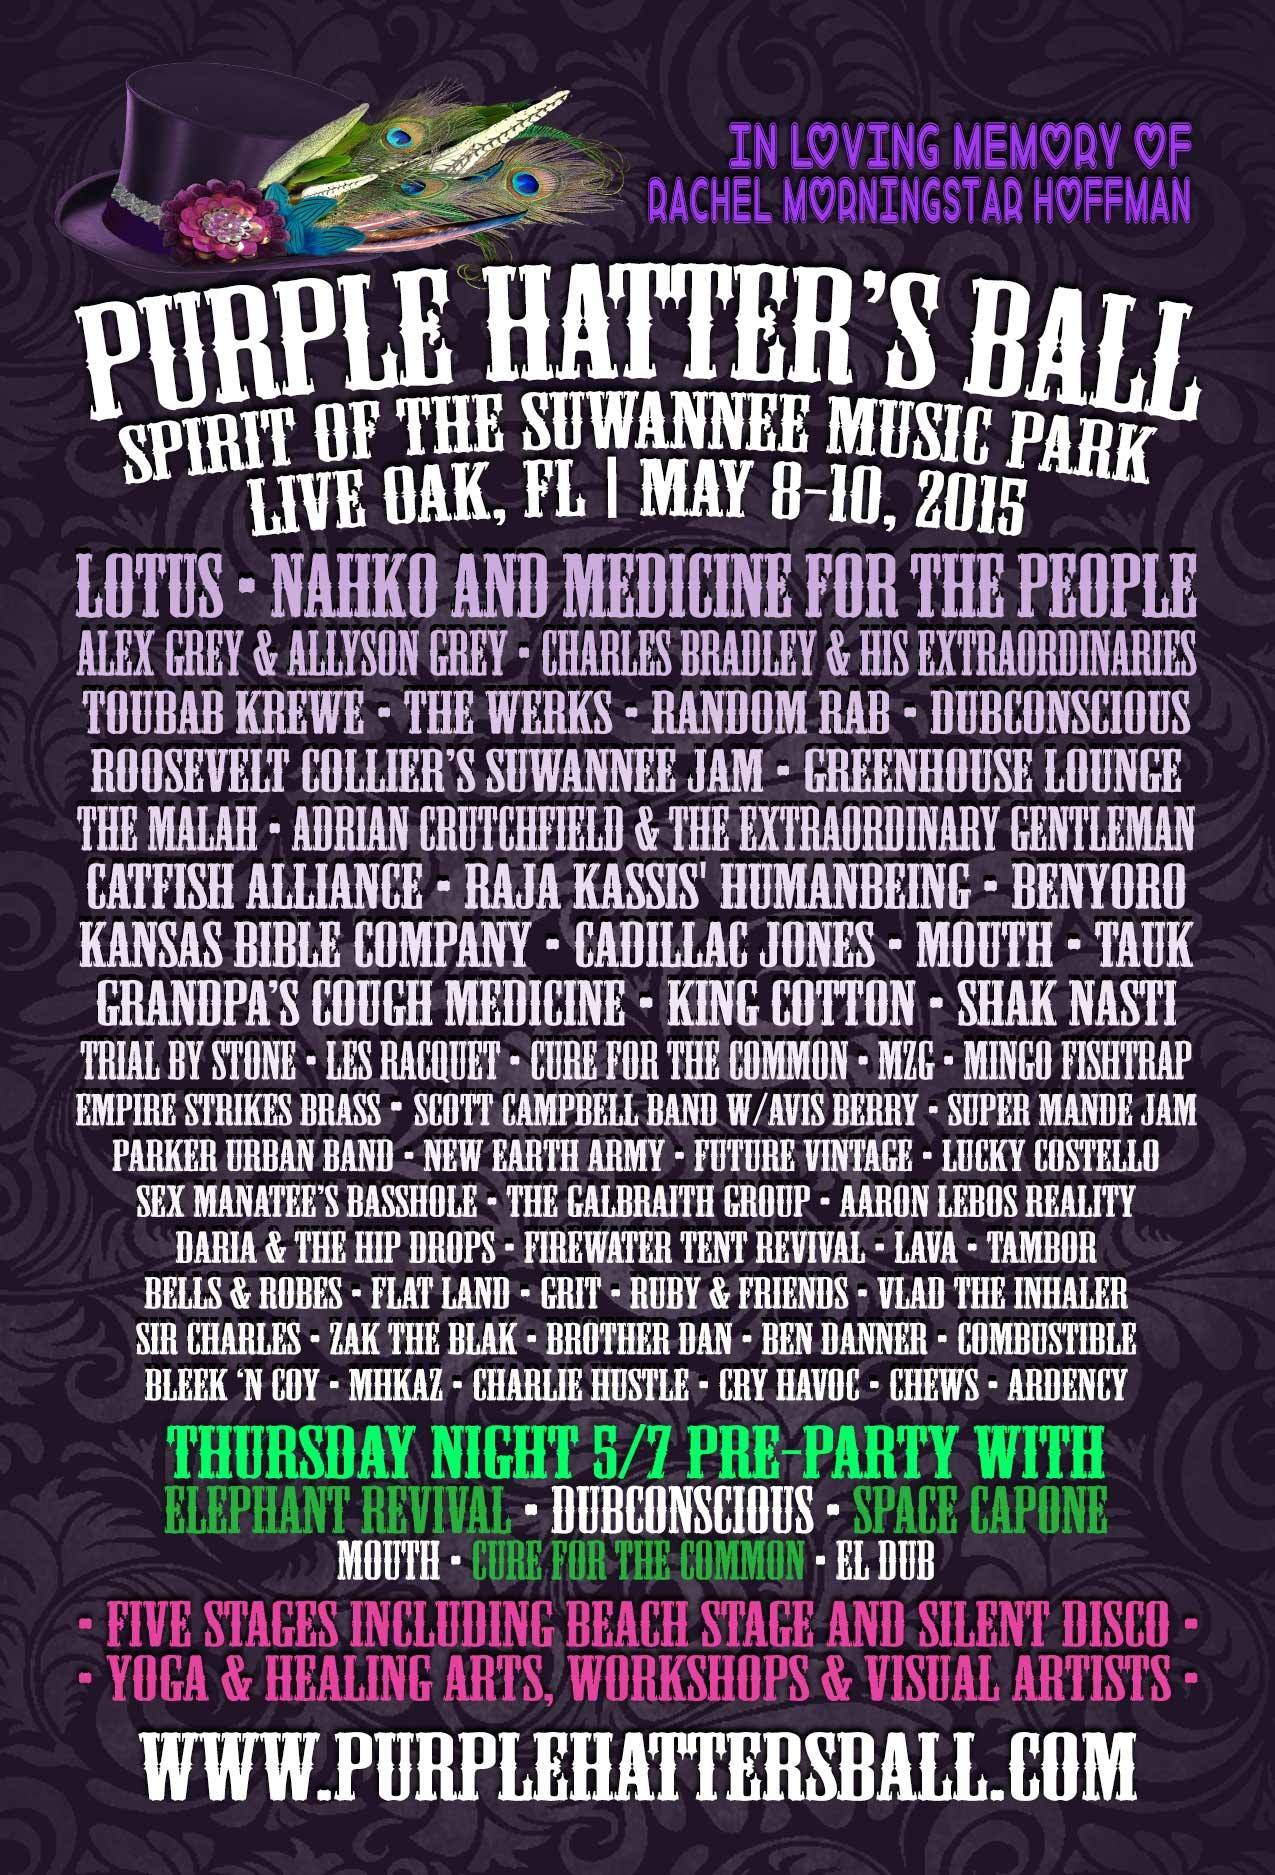 Purple Hatter's Ball Adds TAUK and Mingo Fishtrap, Releases Schedule and Live Art Artist Roster